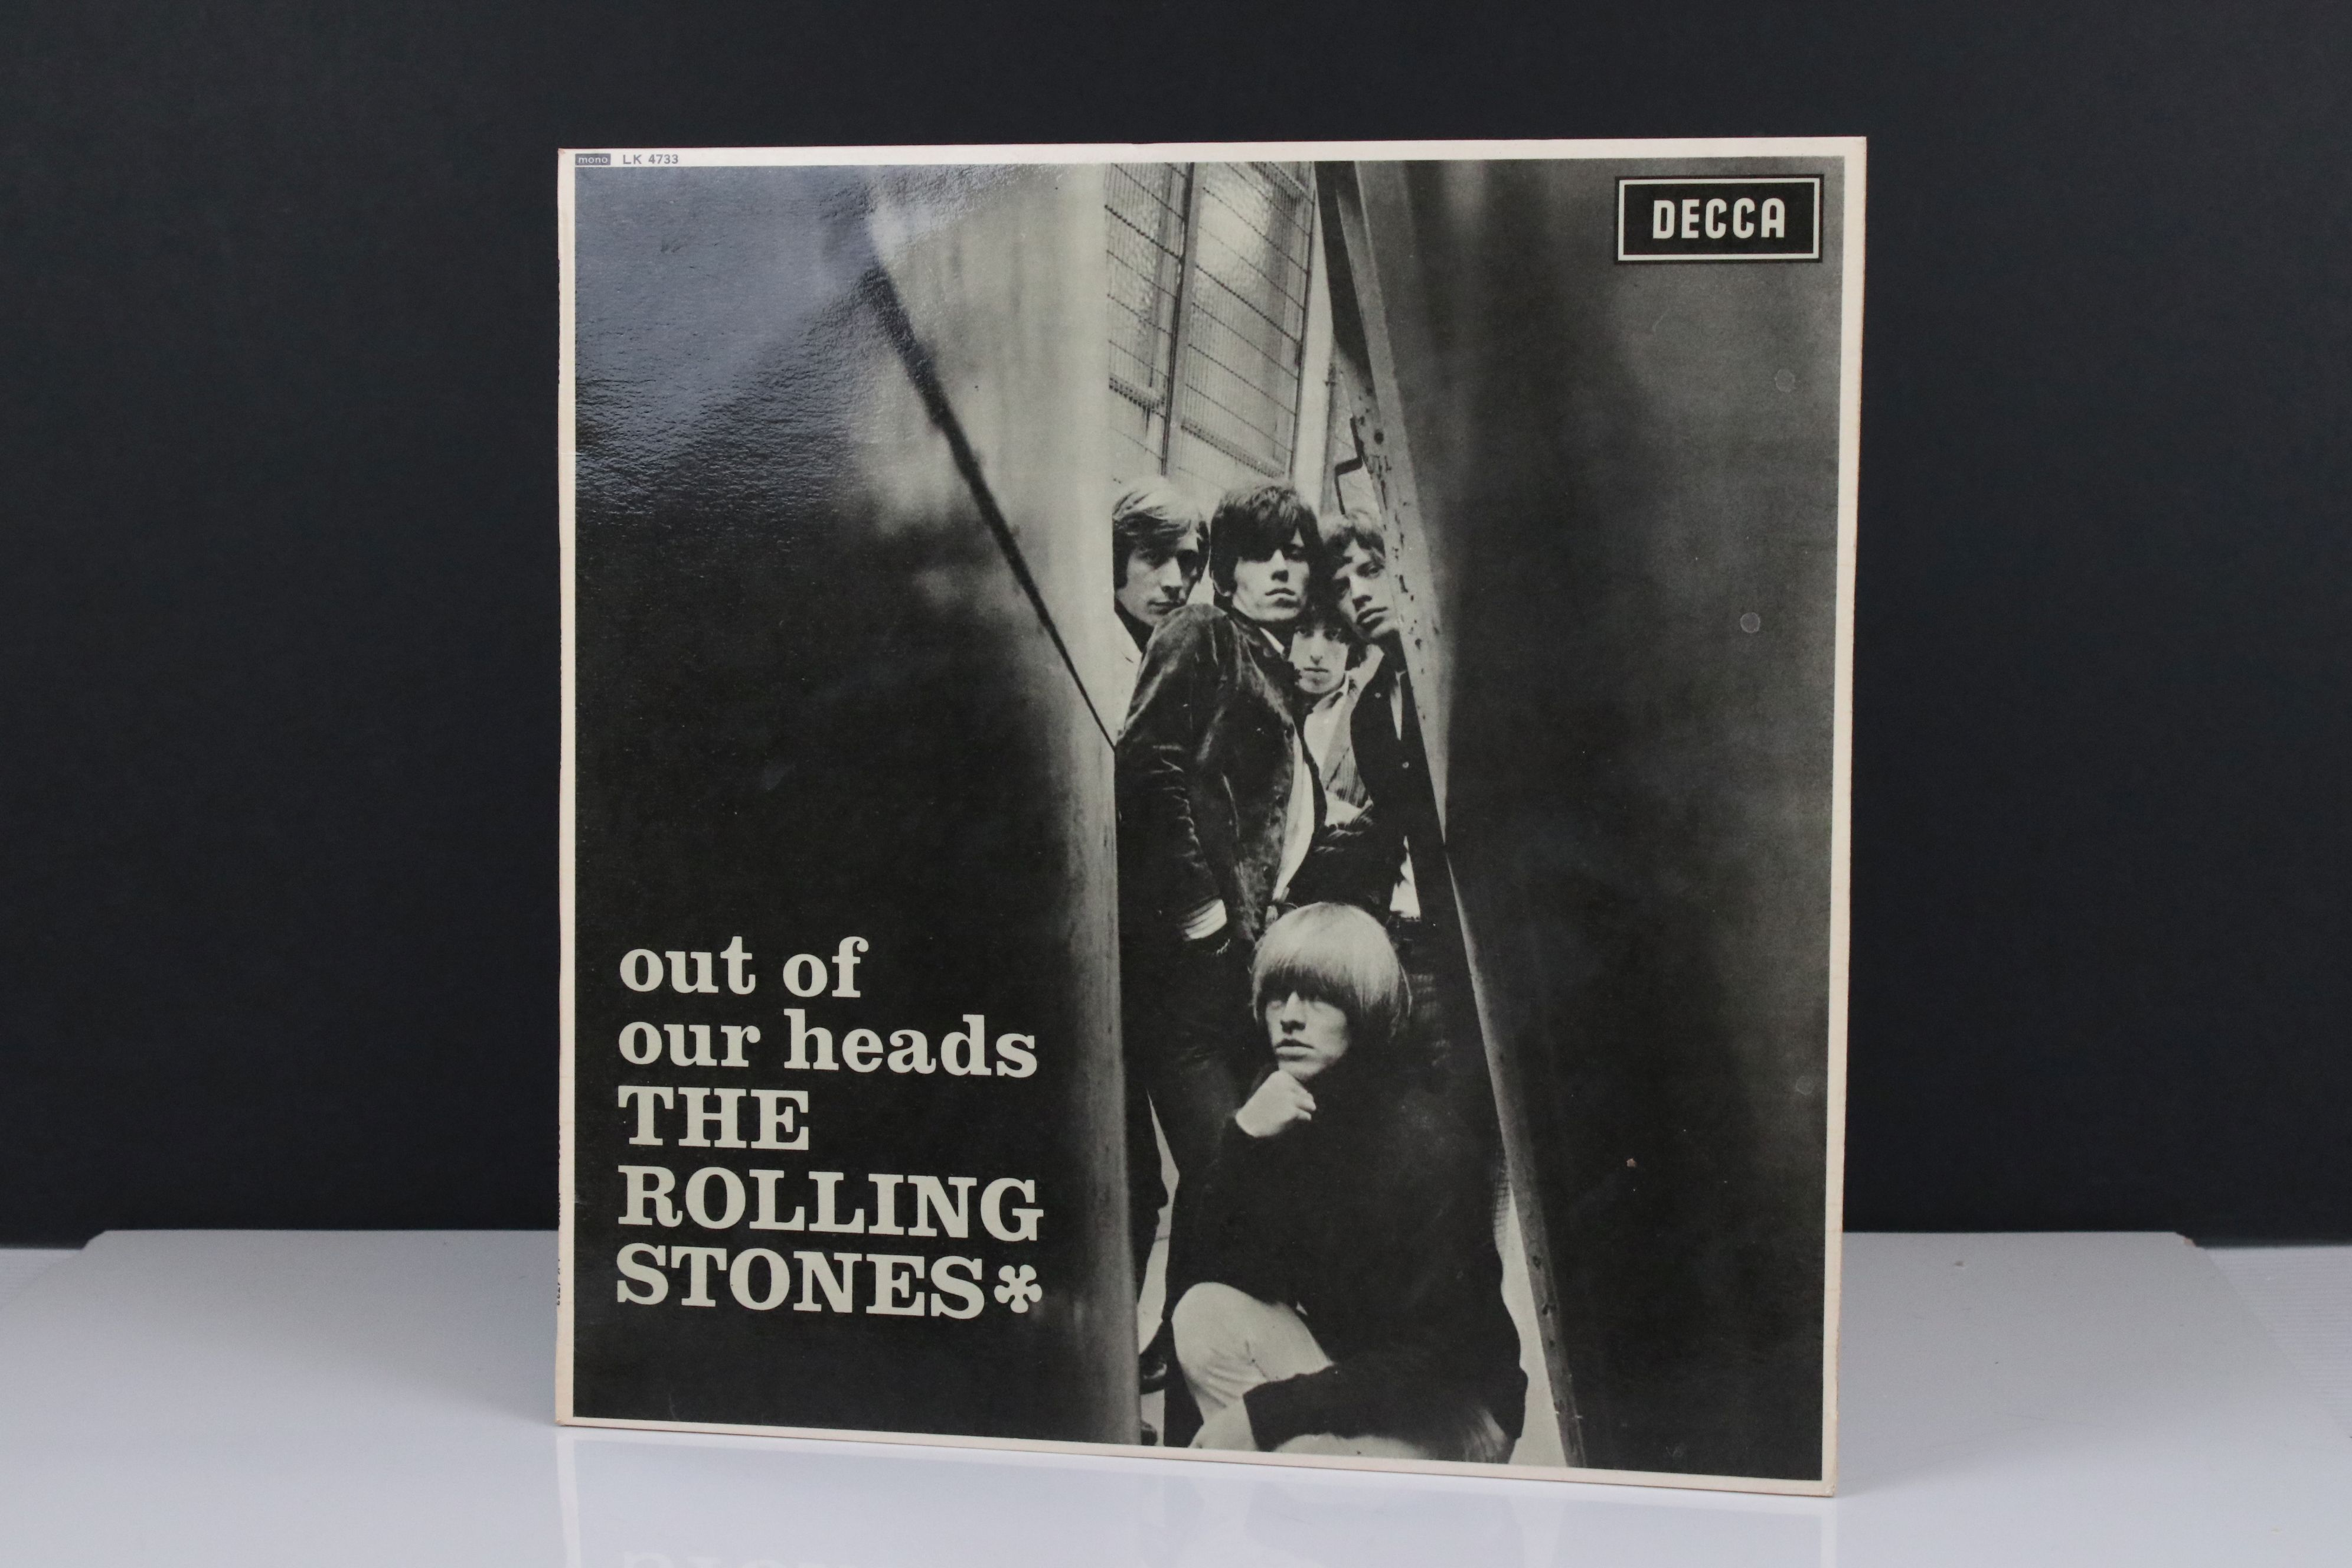 Vinyl - The Rolling Stones Out Of Our Heads (Decca LK 4733) mono, non flipback sleeve by Robert